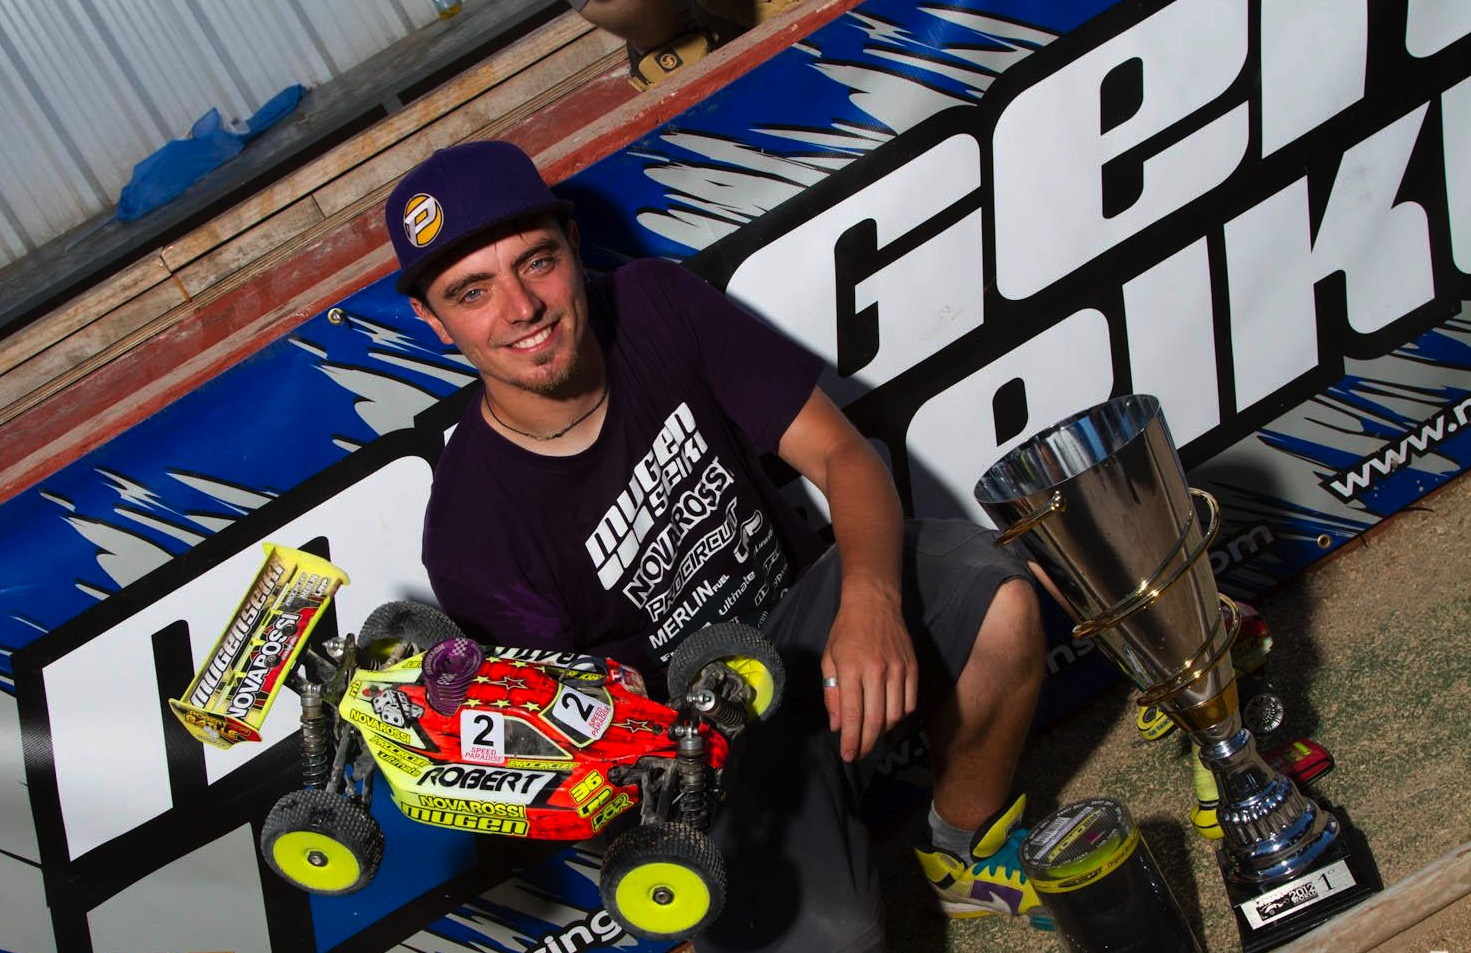 2012 IFMAR Worlds Argentina – Robert Batlle is World Champion!